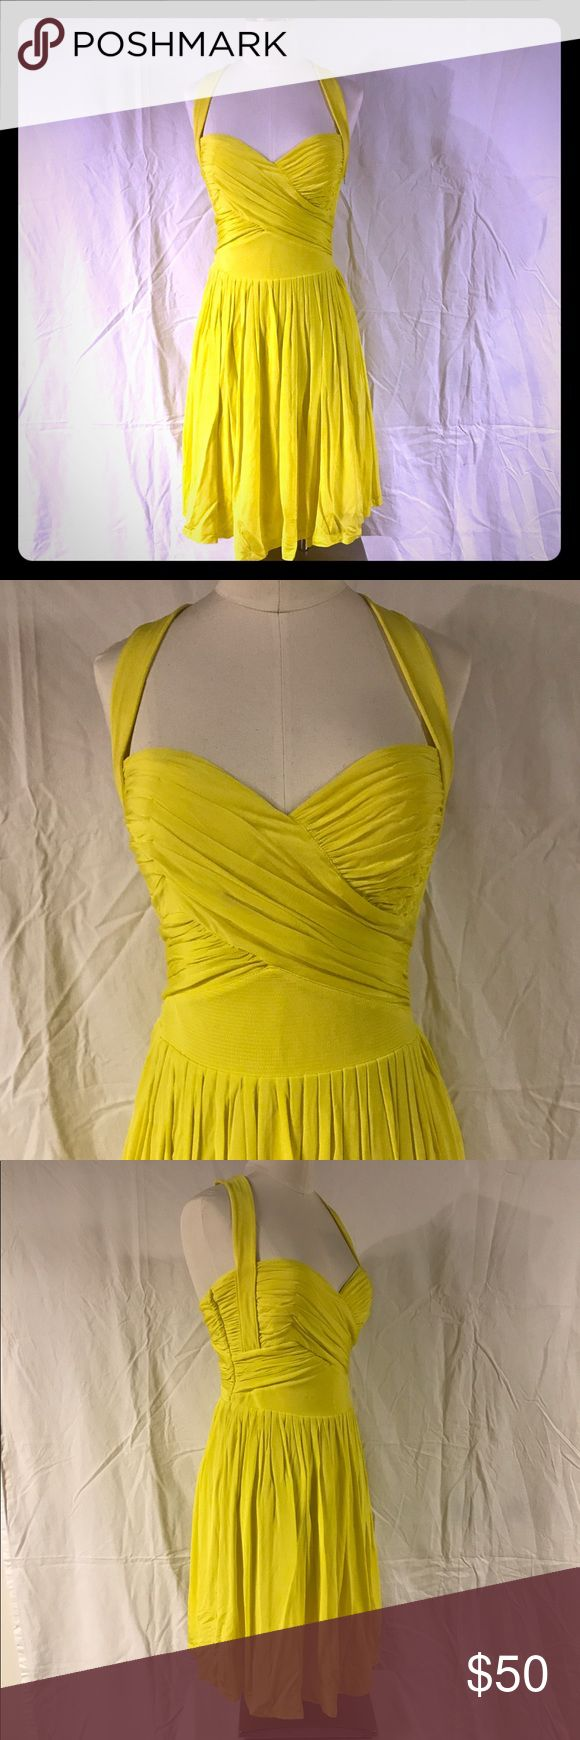 Bebe neon yellow dress Small EUC Bebe neon/bright yellow dress size Small. Fully lined, built-in bra pads, side zipper with hook and eye closure.  Knee length. Worn twice. Excellent used condition. Could use a good steam. Flowy, silk-like thin fabric, and so flattering. Perfect dress to wear to a wedding or night out! bebe Dresses Midi